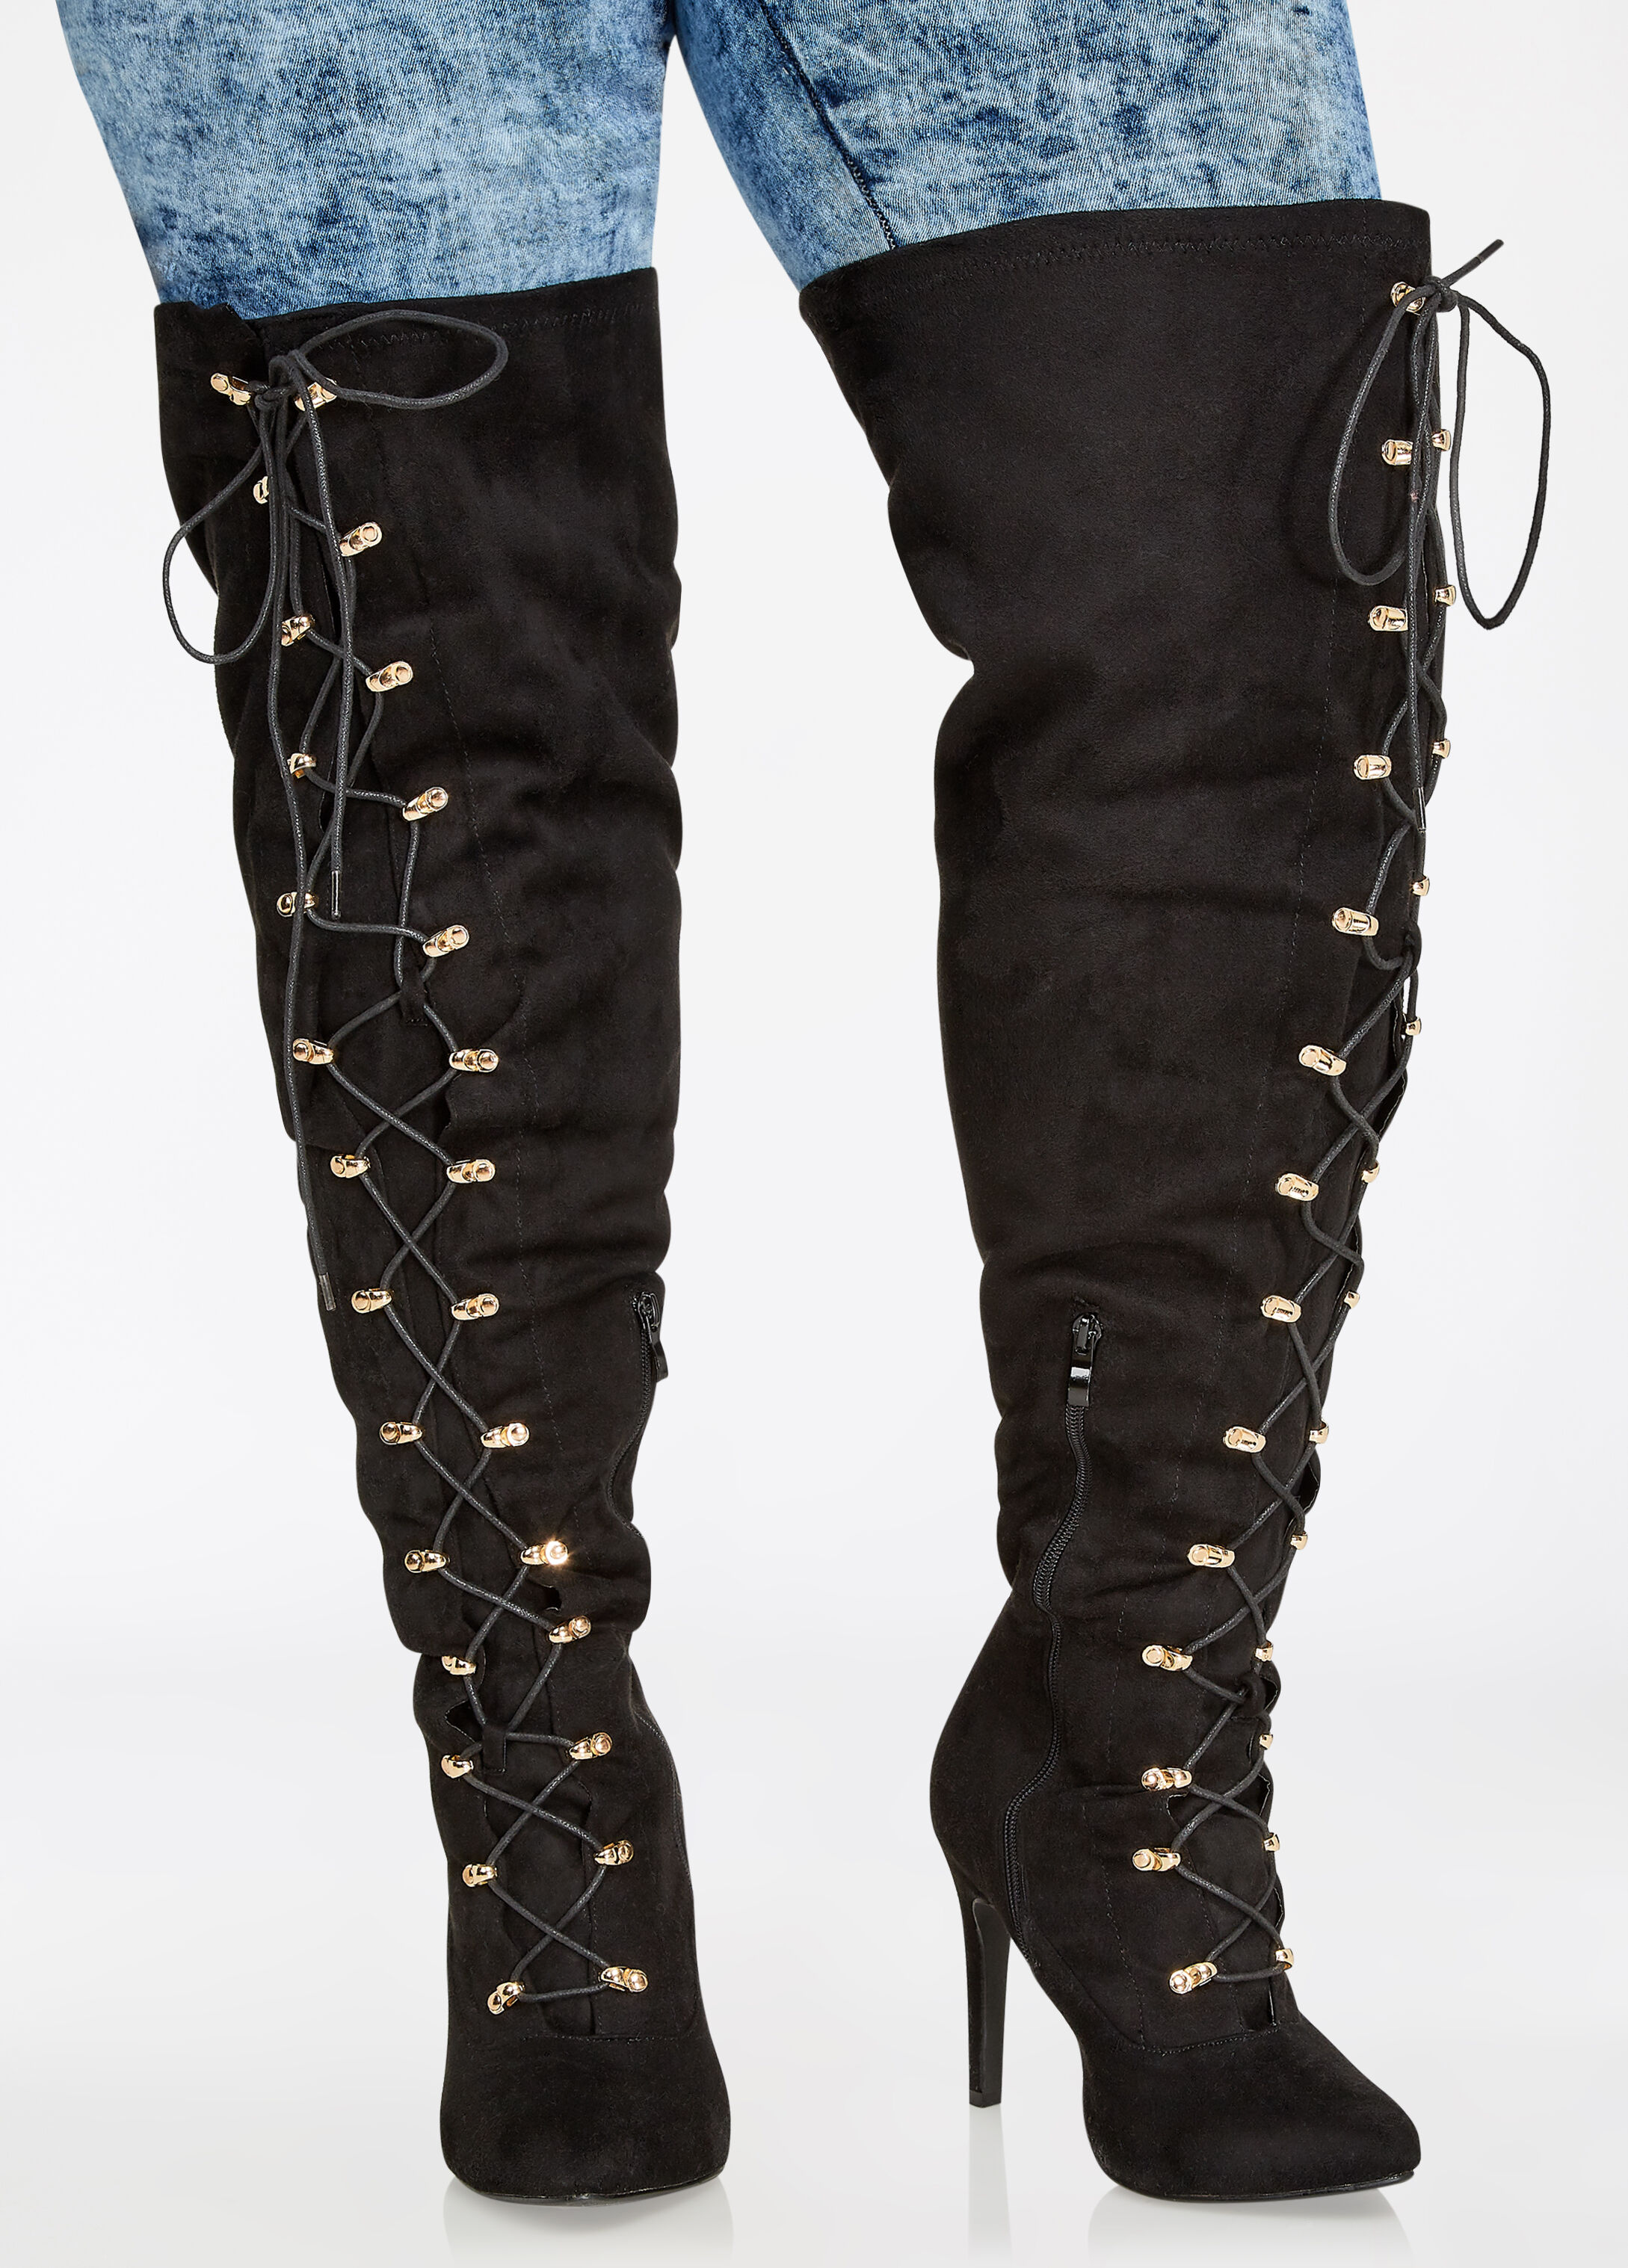 Over-the-Knee Lace-Up Heeled Boots - Wide-Width, Wide-Calf